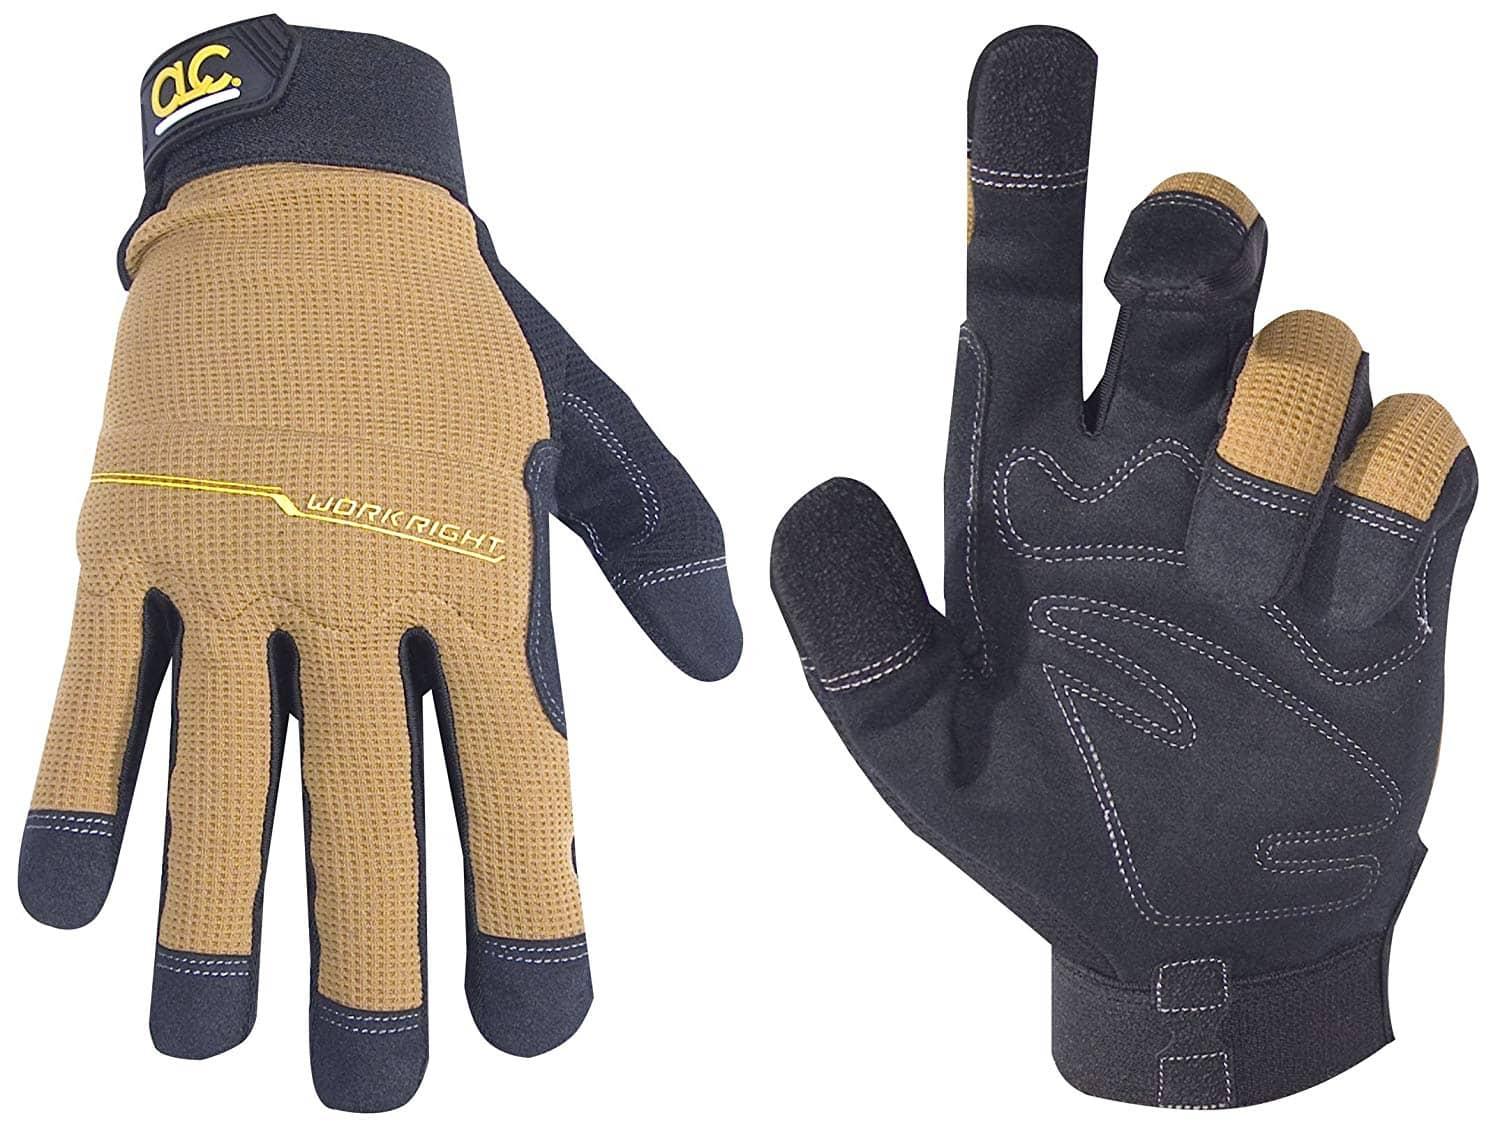 CLC Custom Leathercraft 124X Workright Flex Grip Work Gloves (XL) $4.99 - Amazon